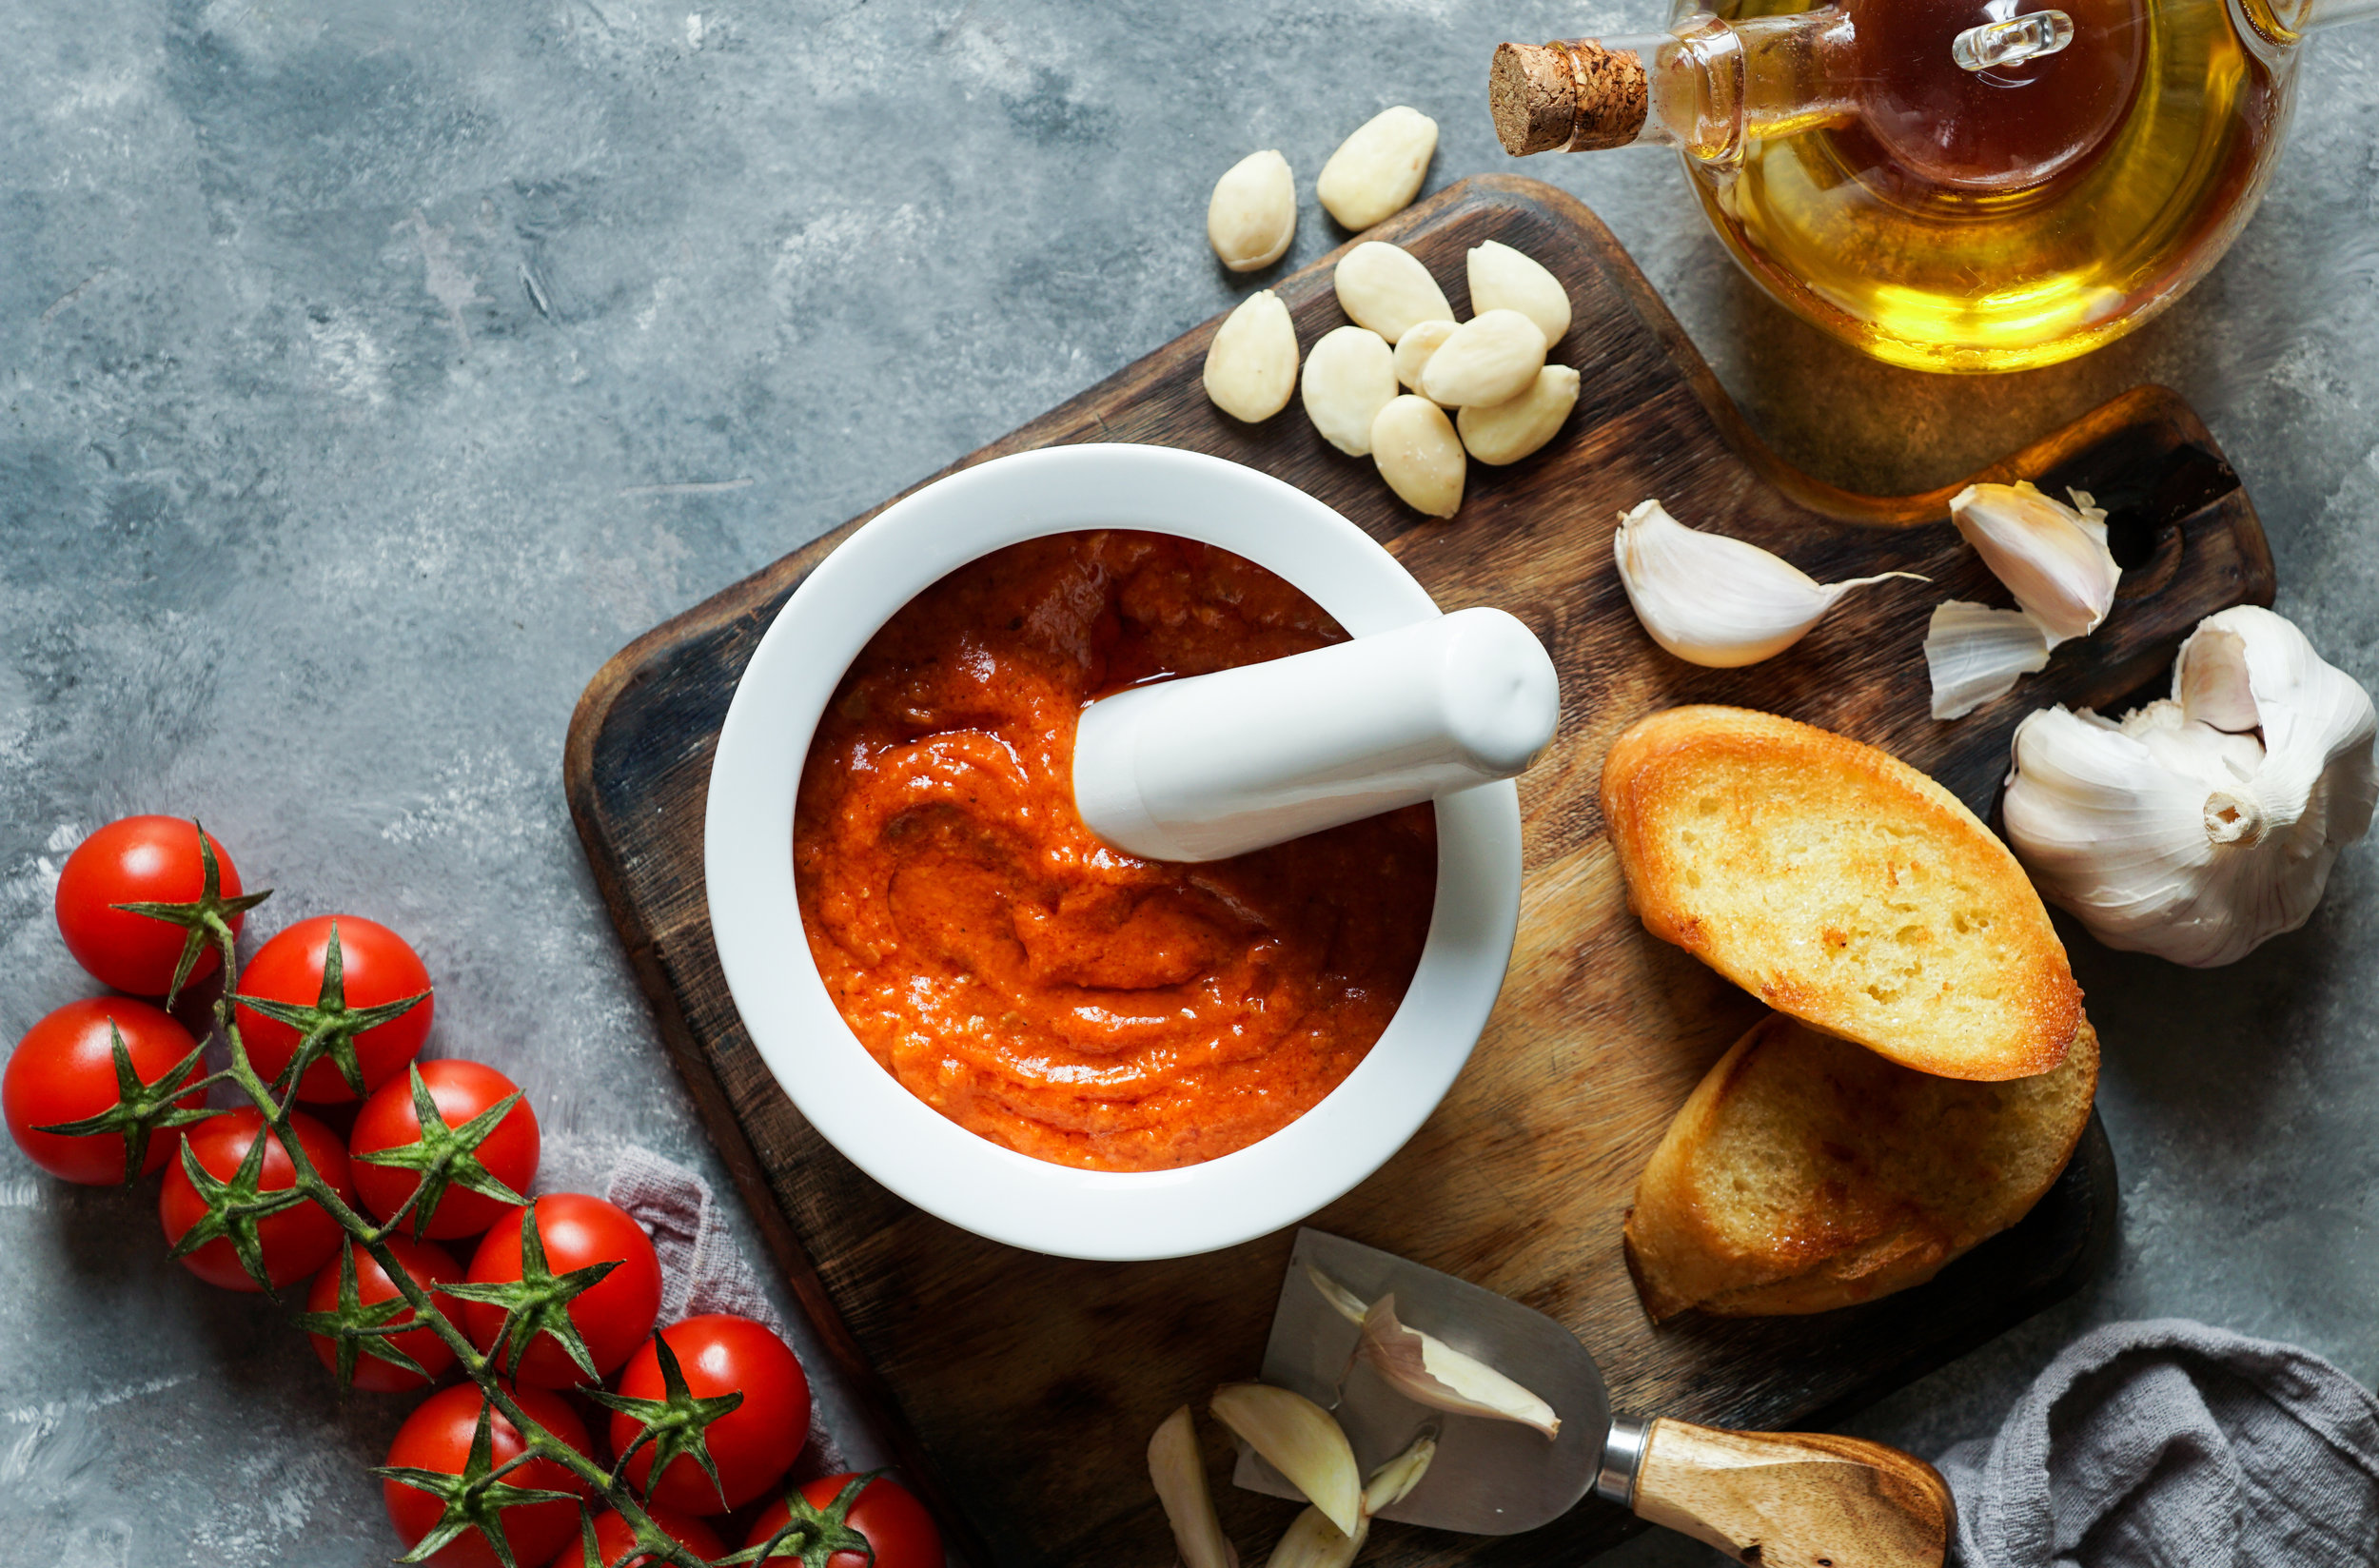 Romesco sauce holds a special summer allure.